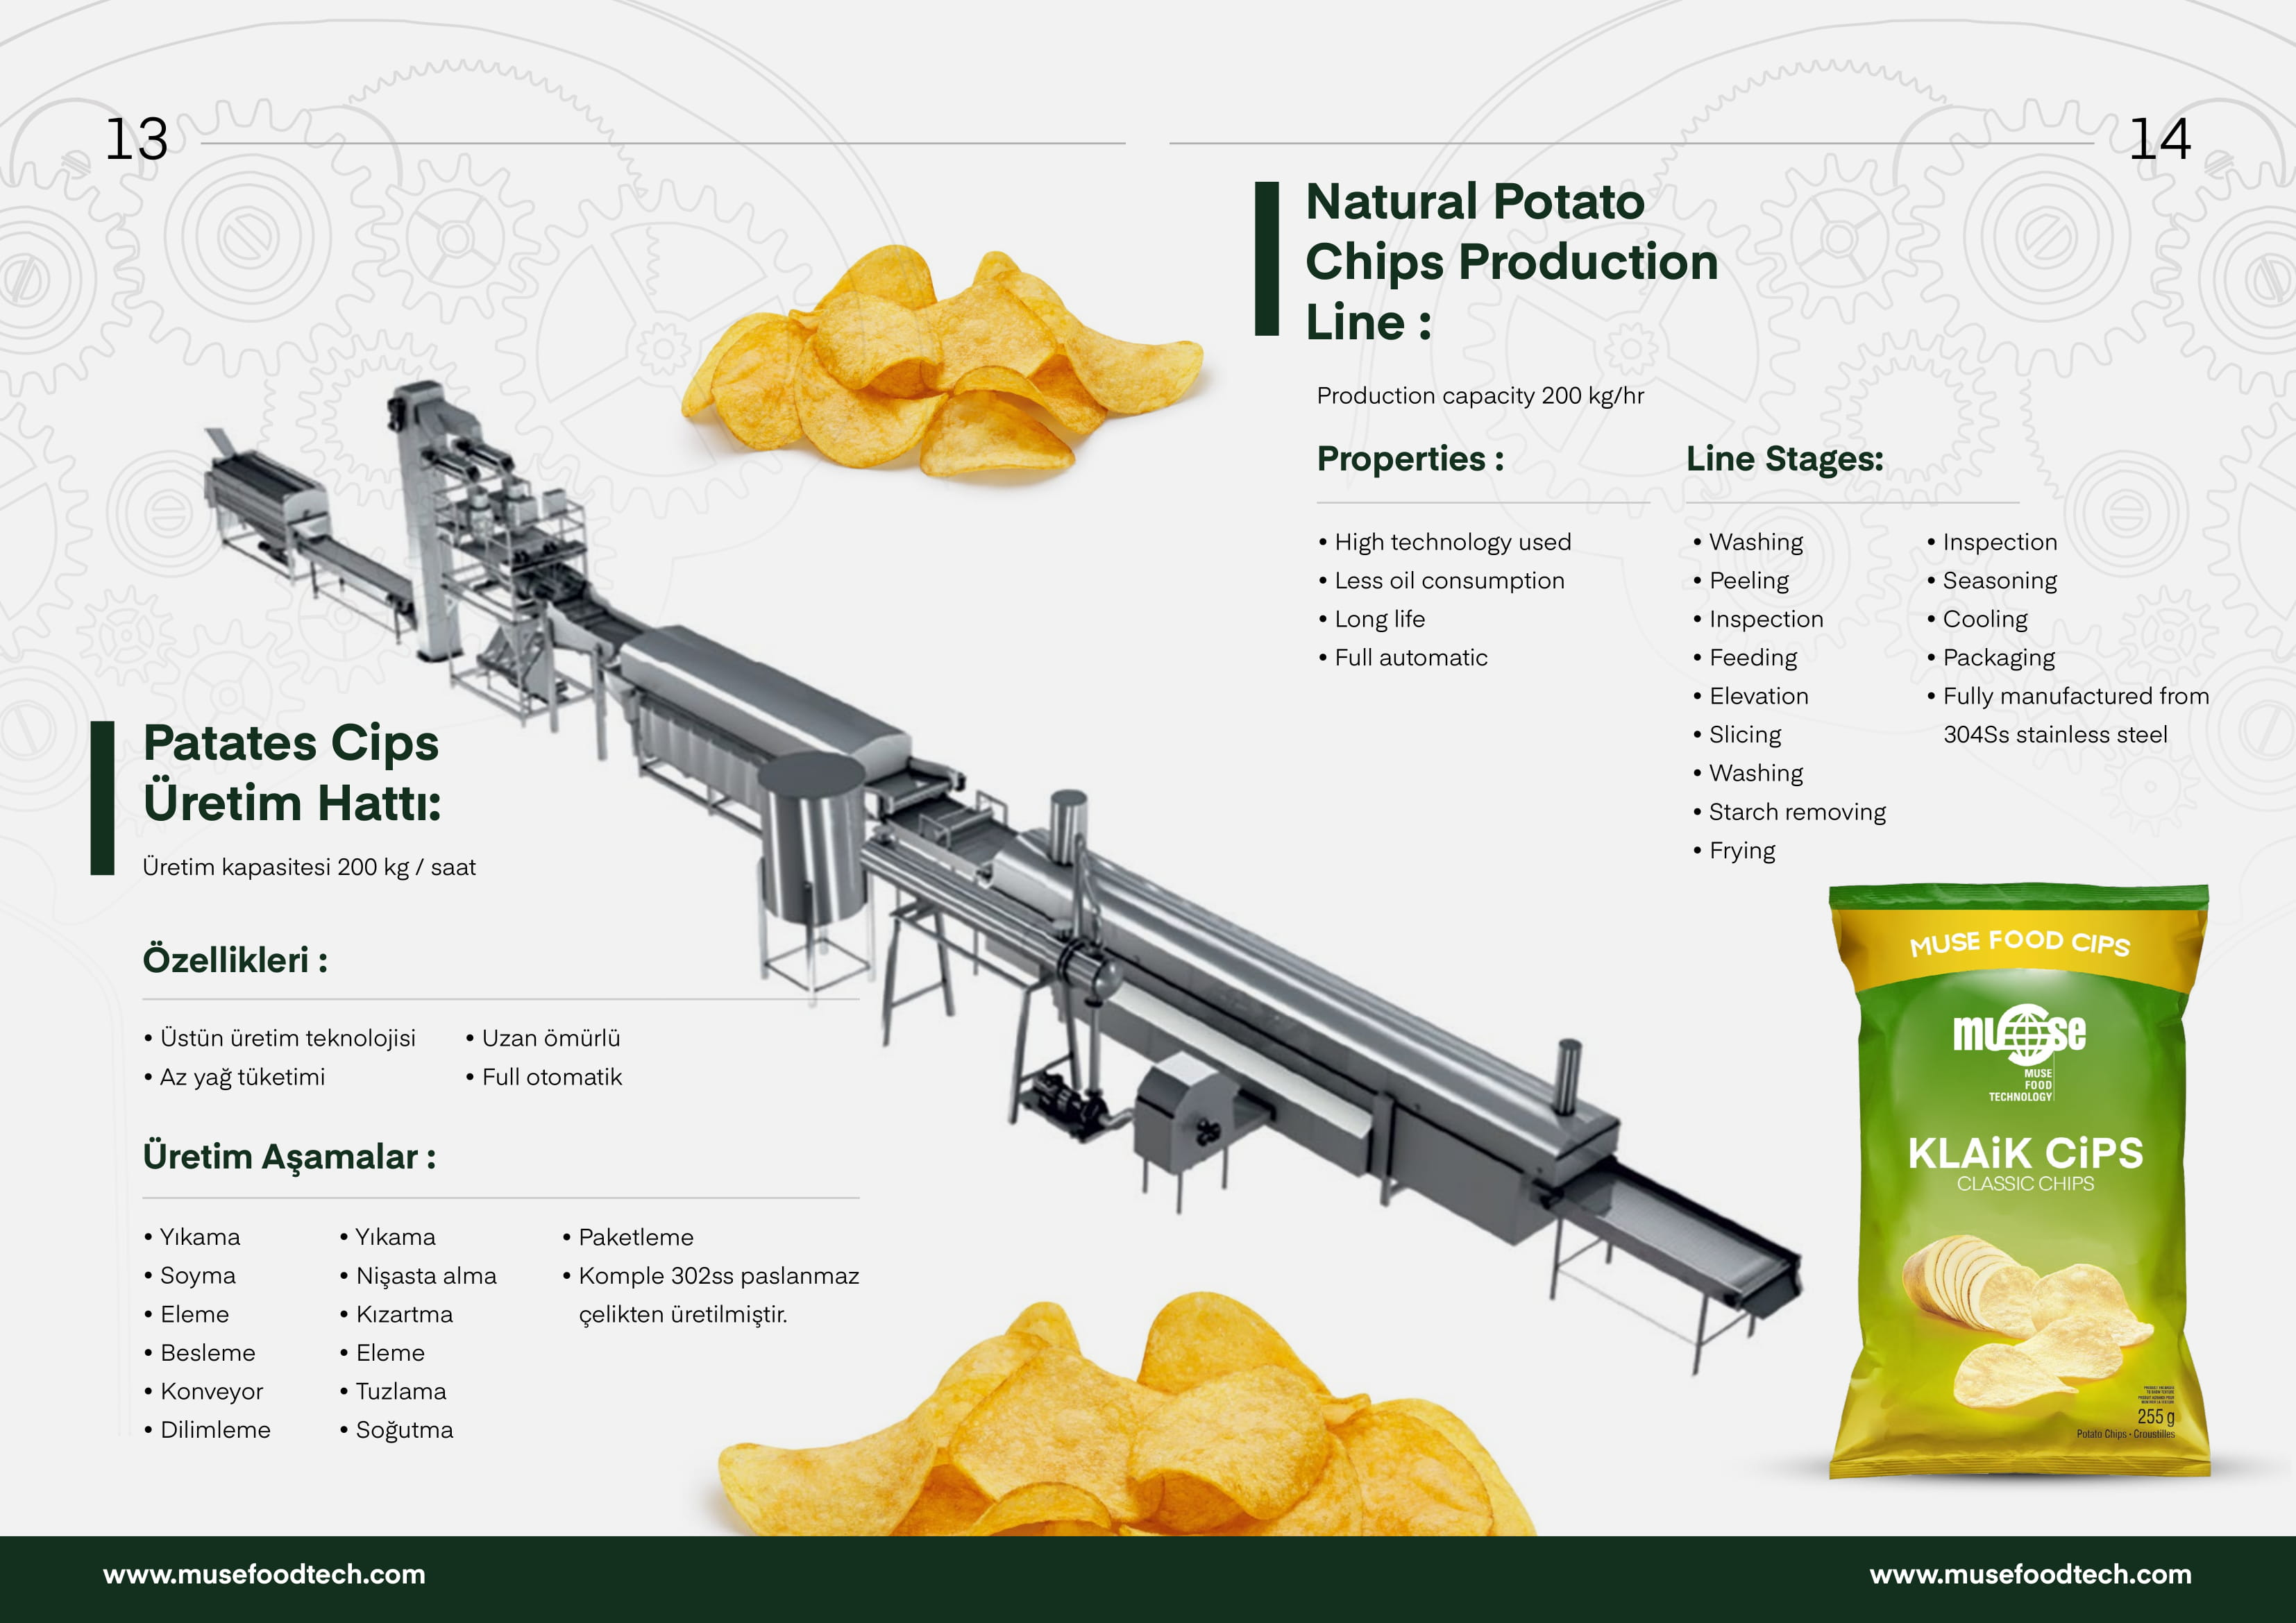 Musepak-Chips-Catalog-08